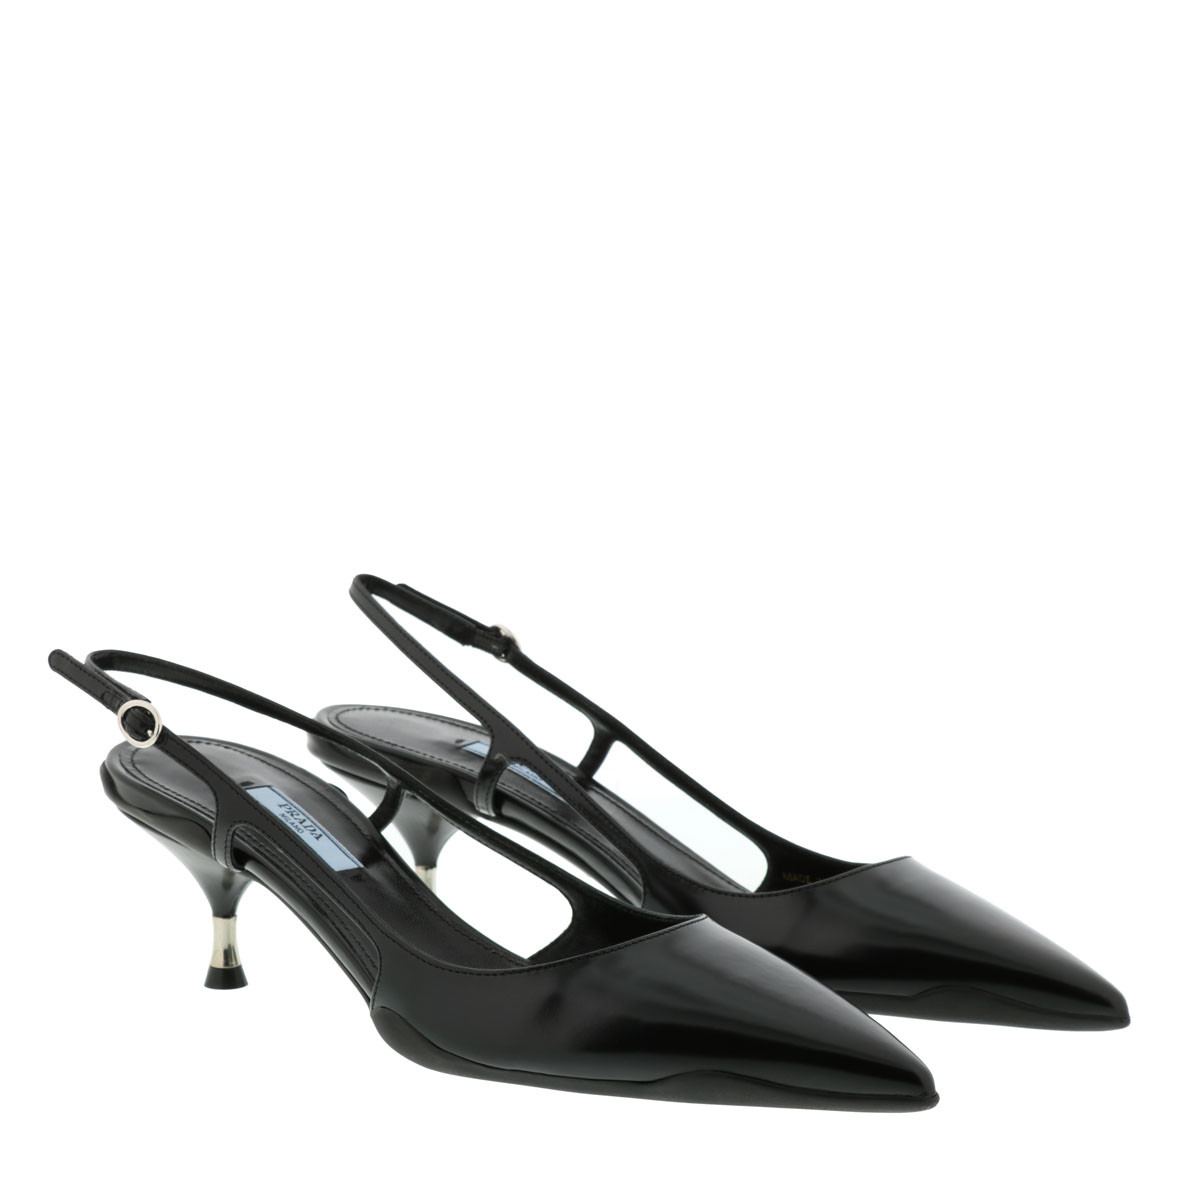 Prada Pumps - Slingback Ballerinas Leather Black - in schwarz - für Damen